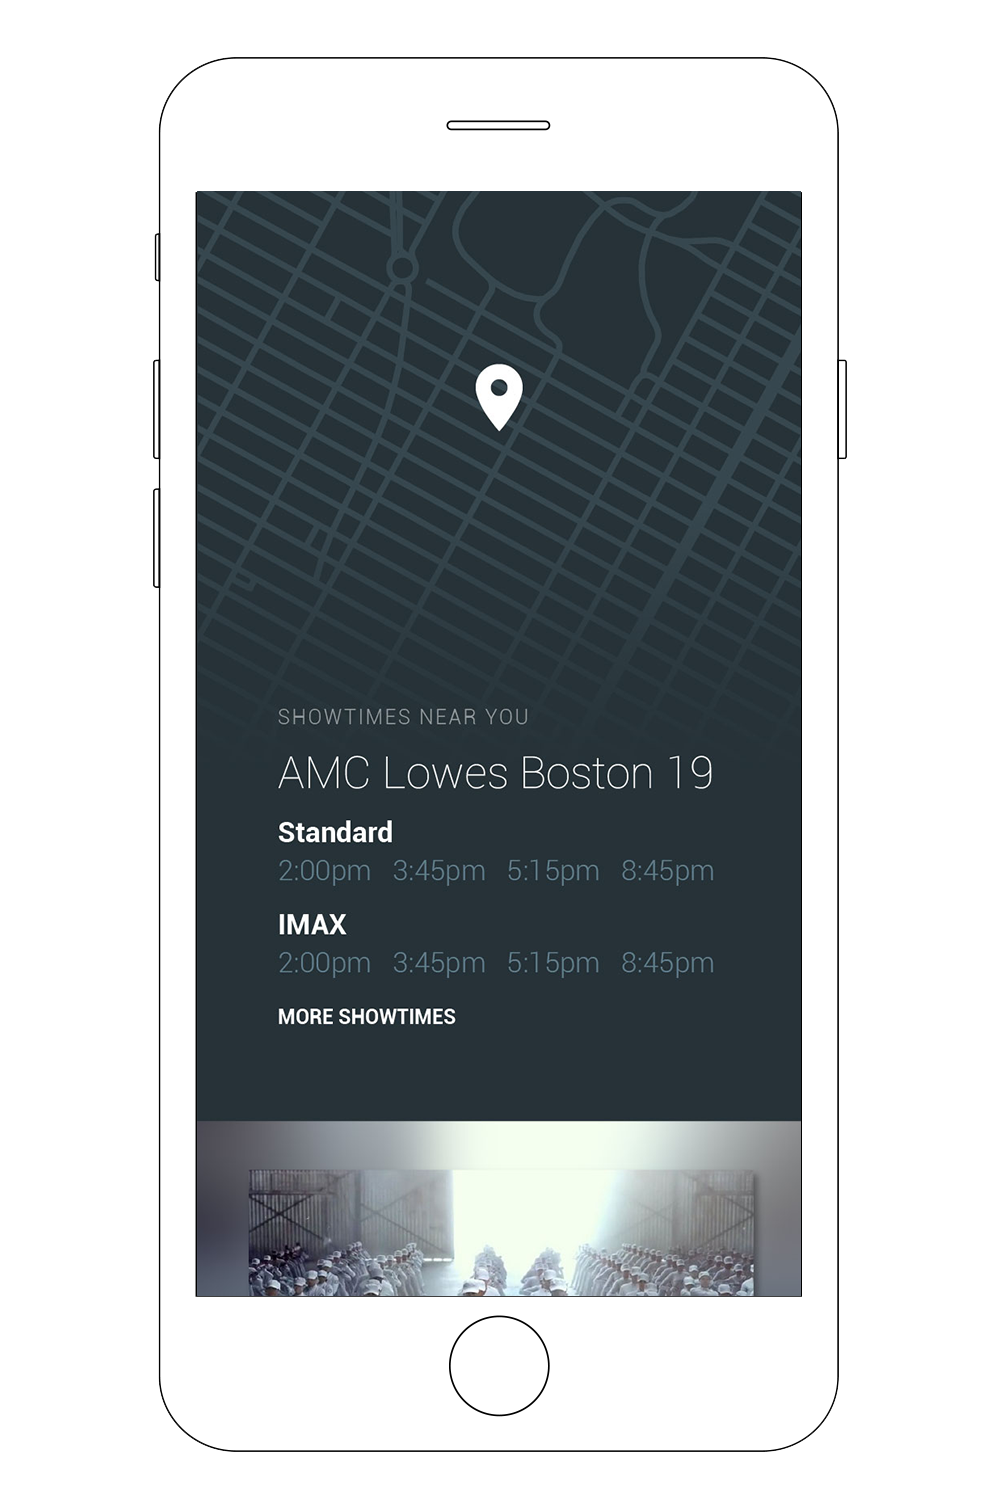 - Contextual contentBased on the user's location, we explored opportunities for contextually relevant content such as movies, showtimes, or concerts.